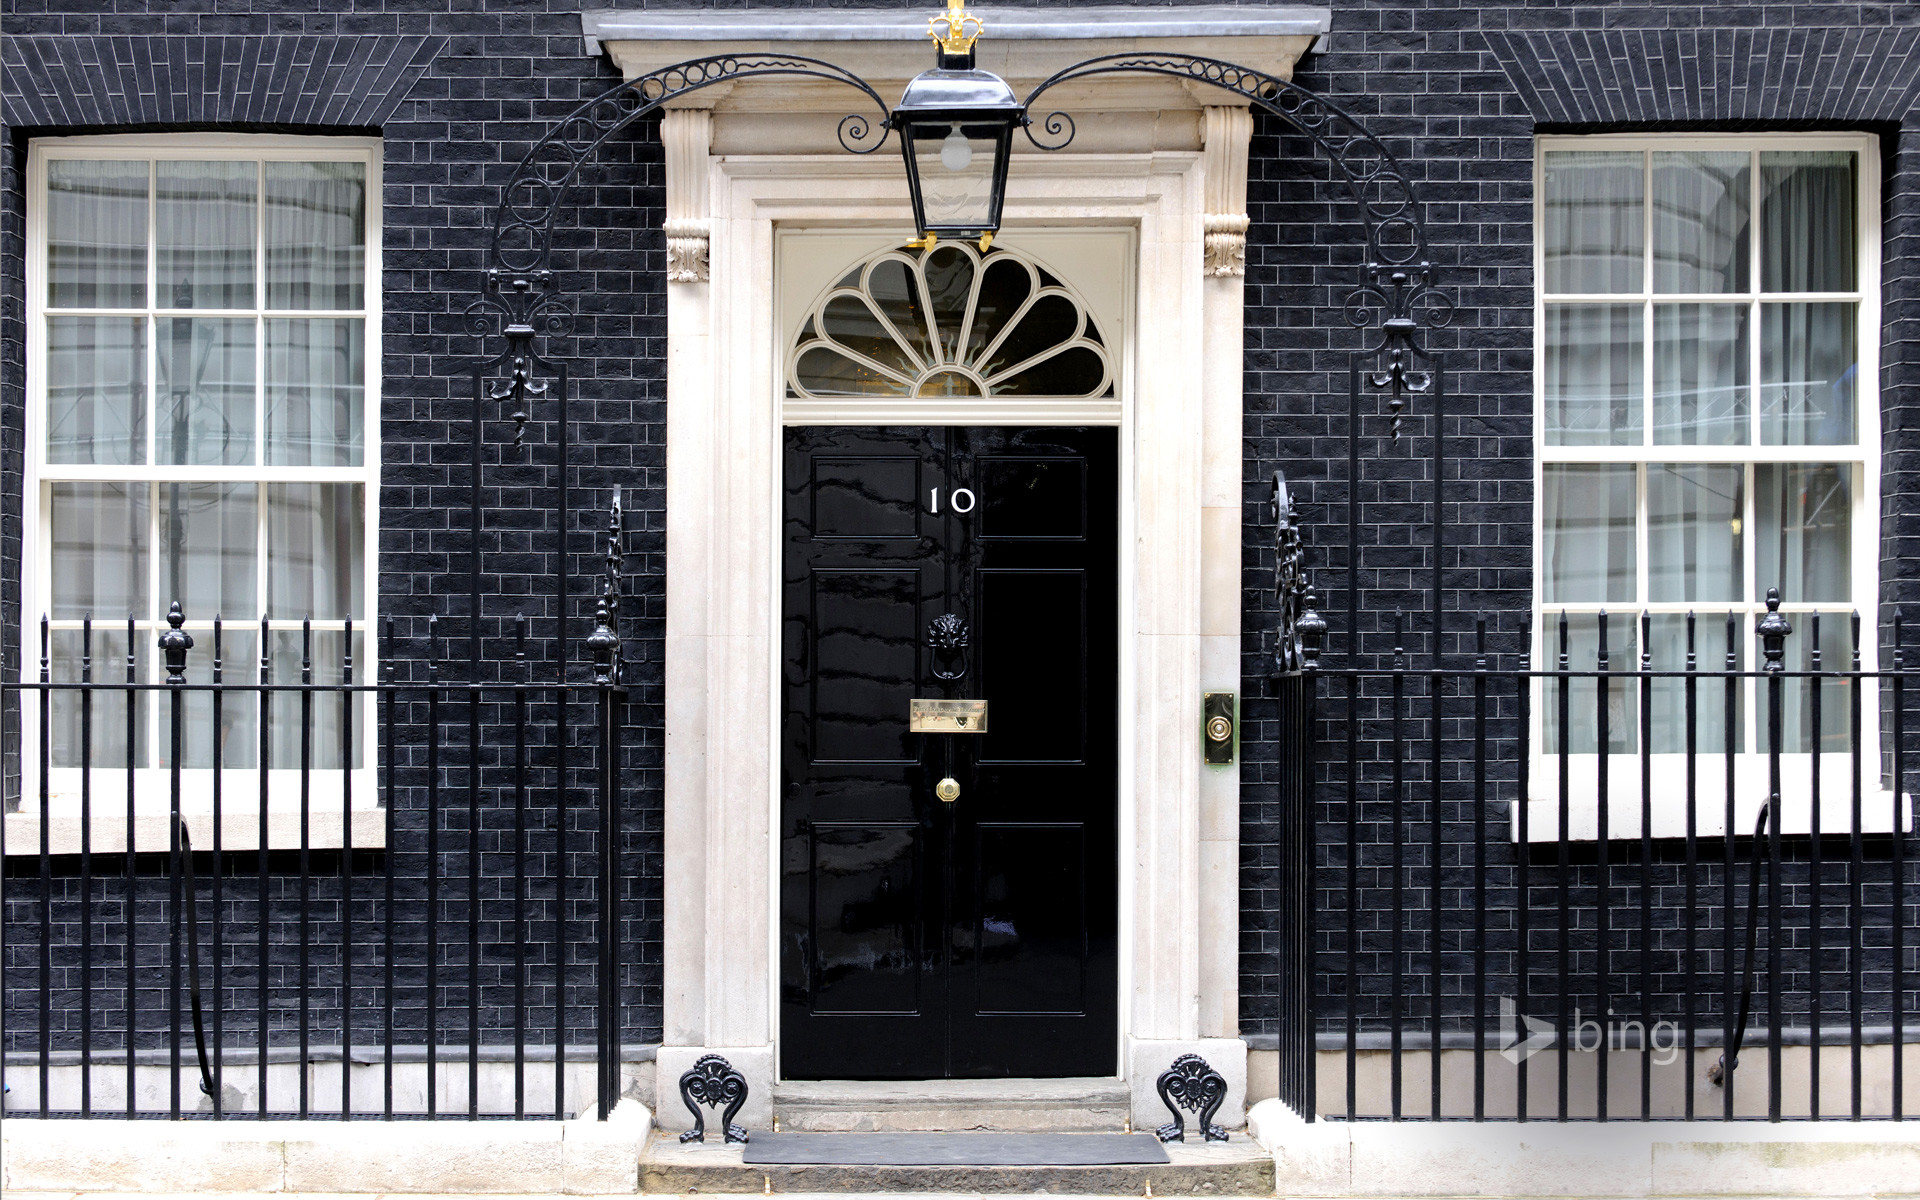 1920x1200 ... 10 Downing Street, Whitehall, London (© Nathan King/Alamy)